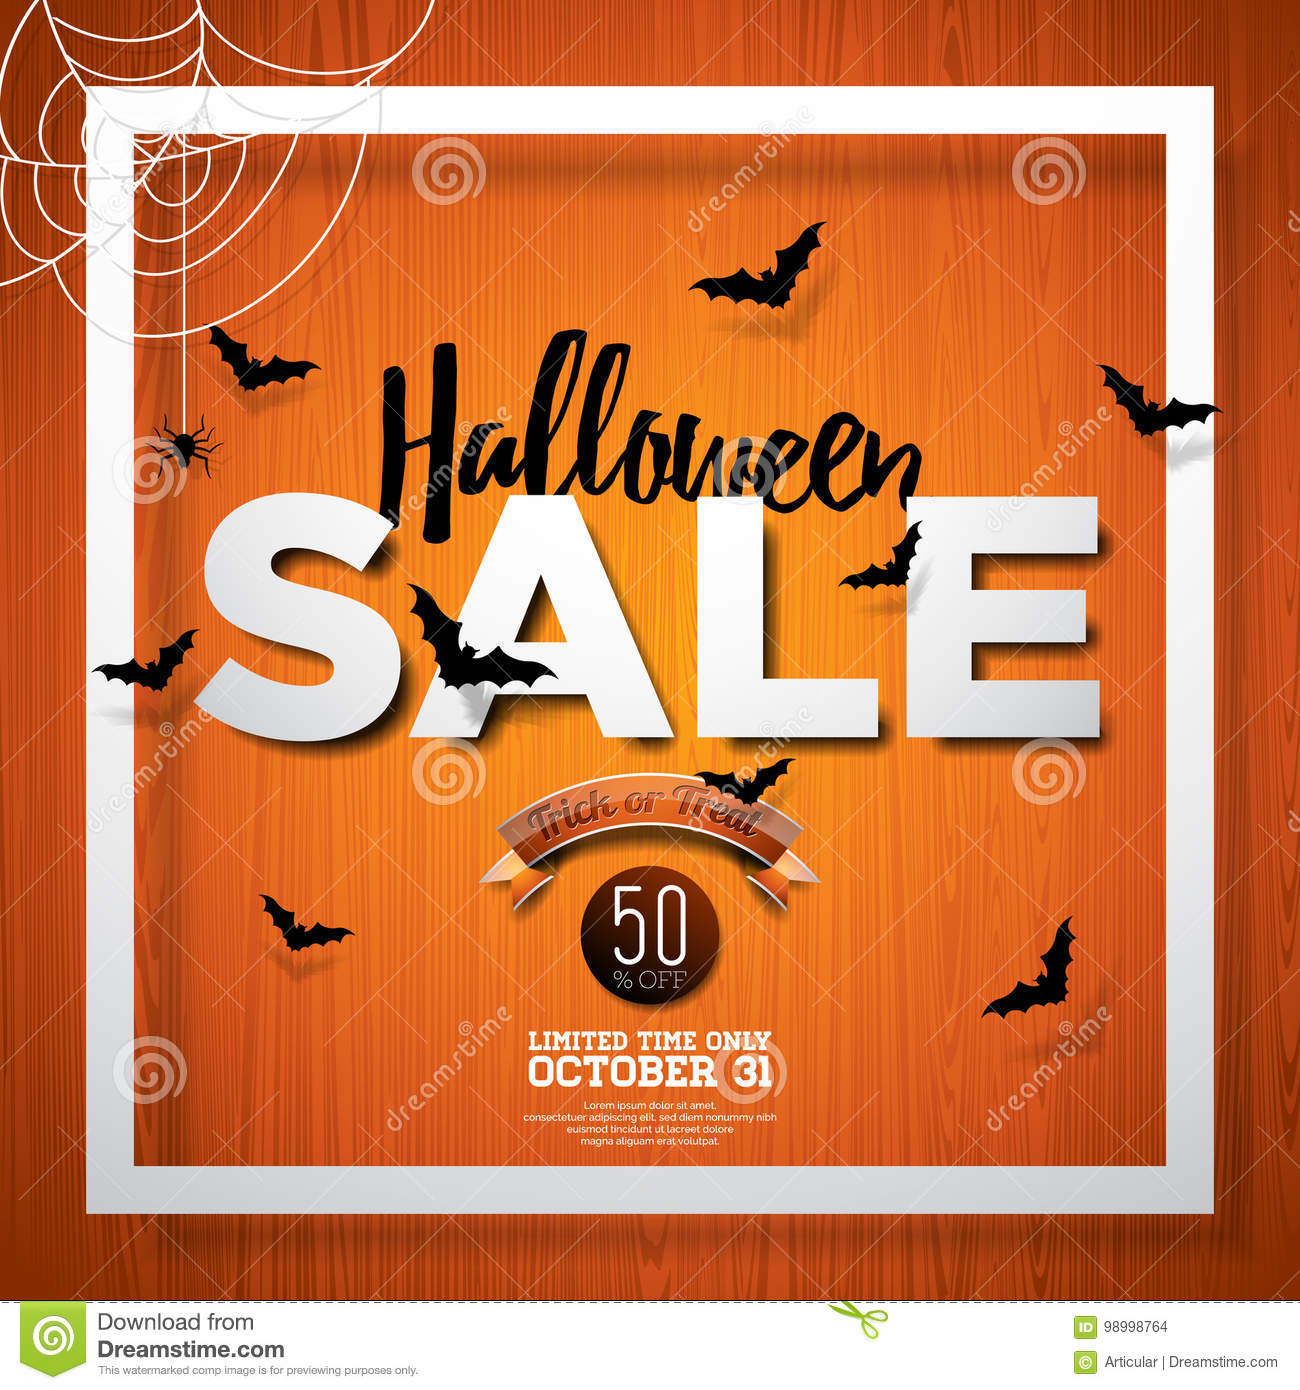 halloween sale vector poster template illustration with moon and